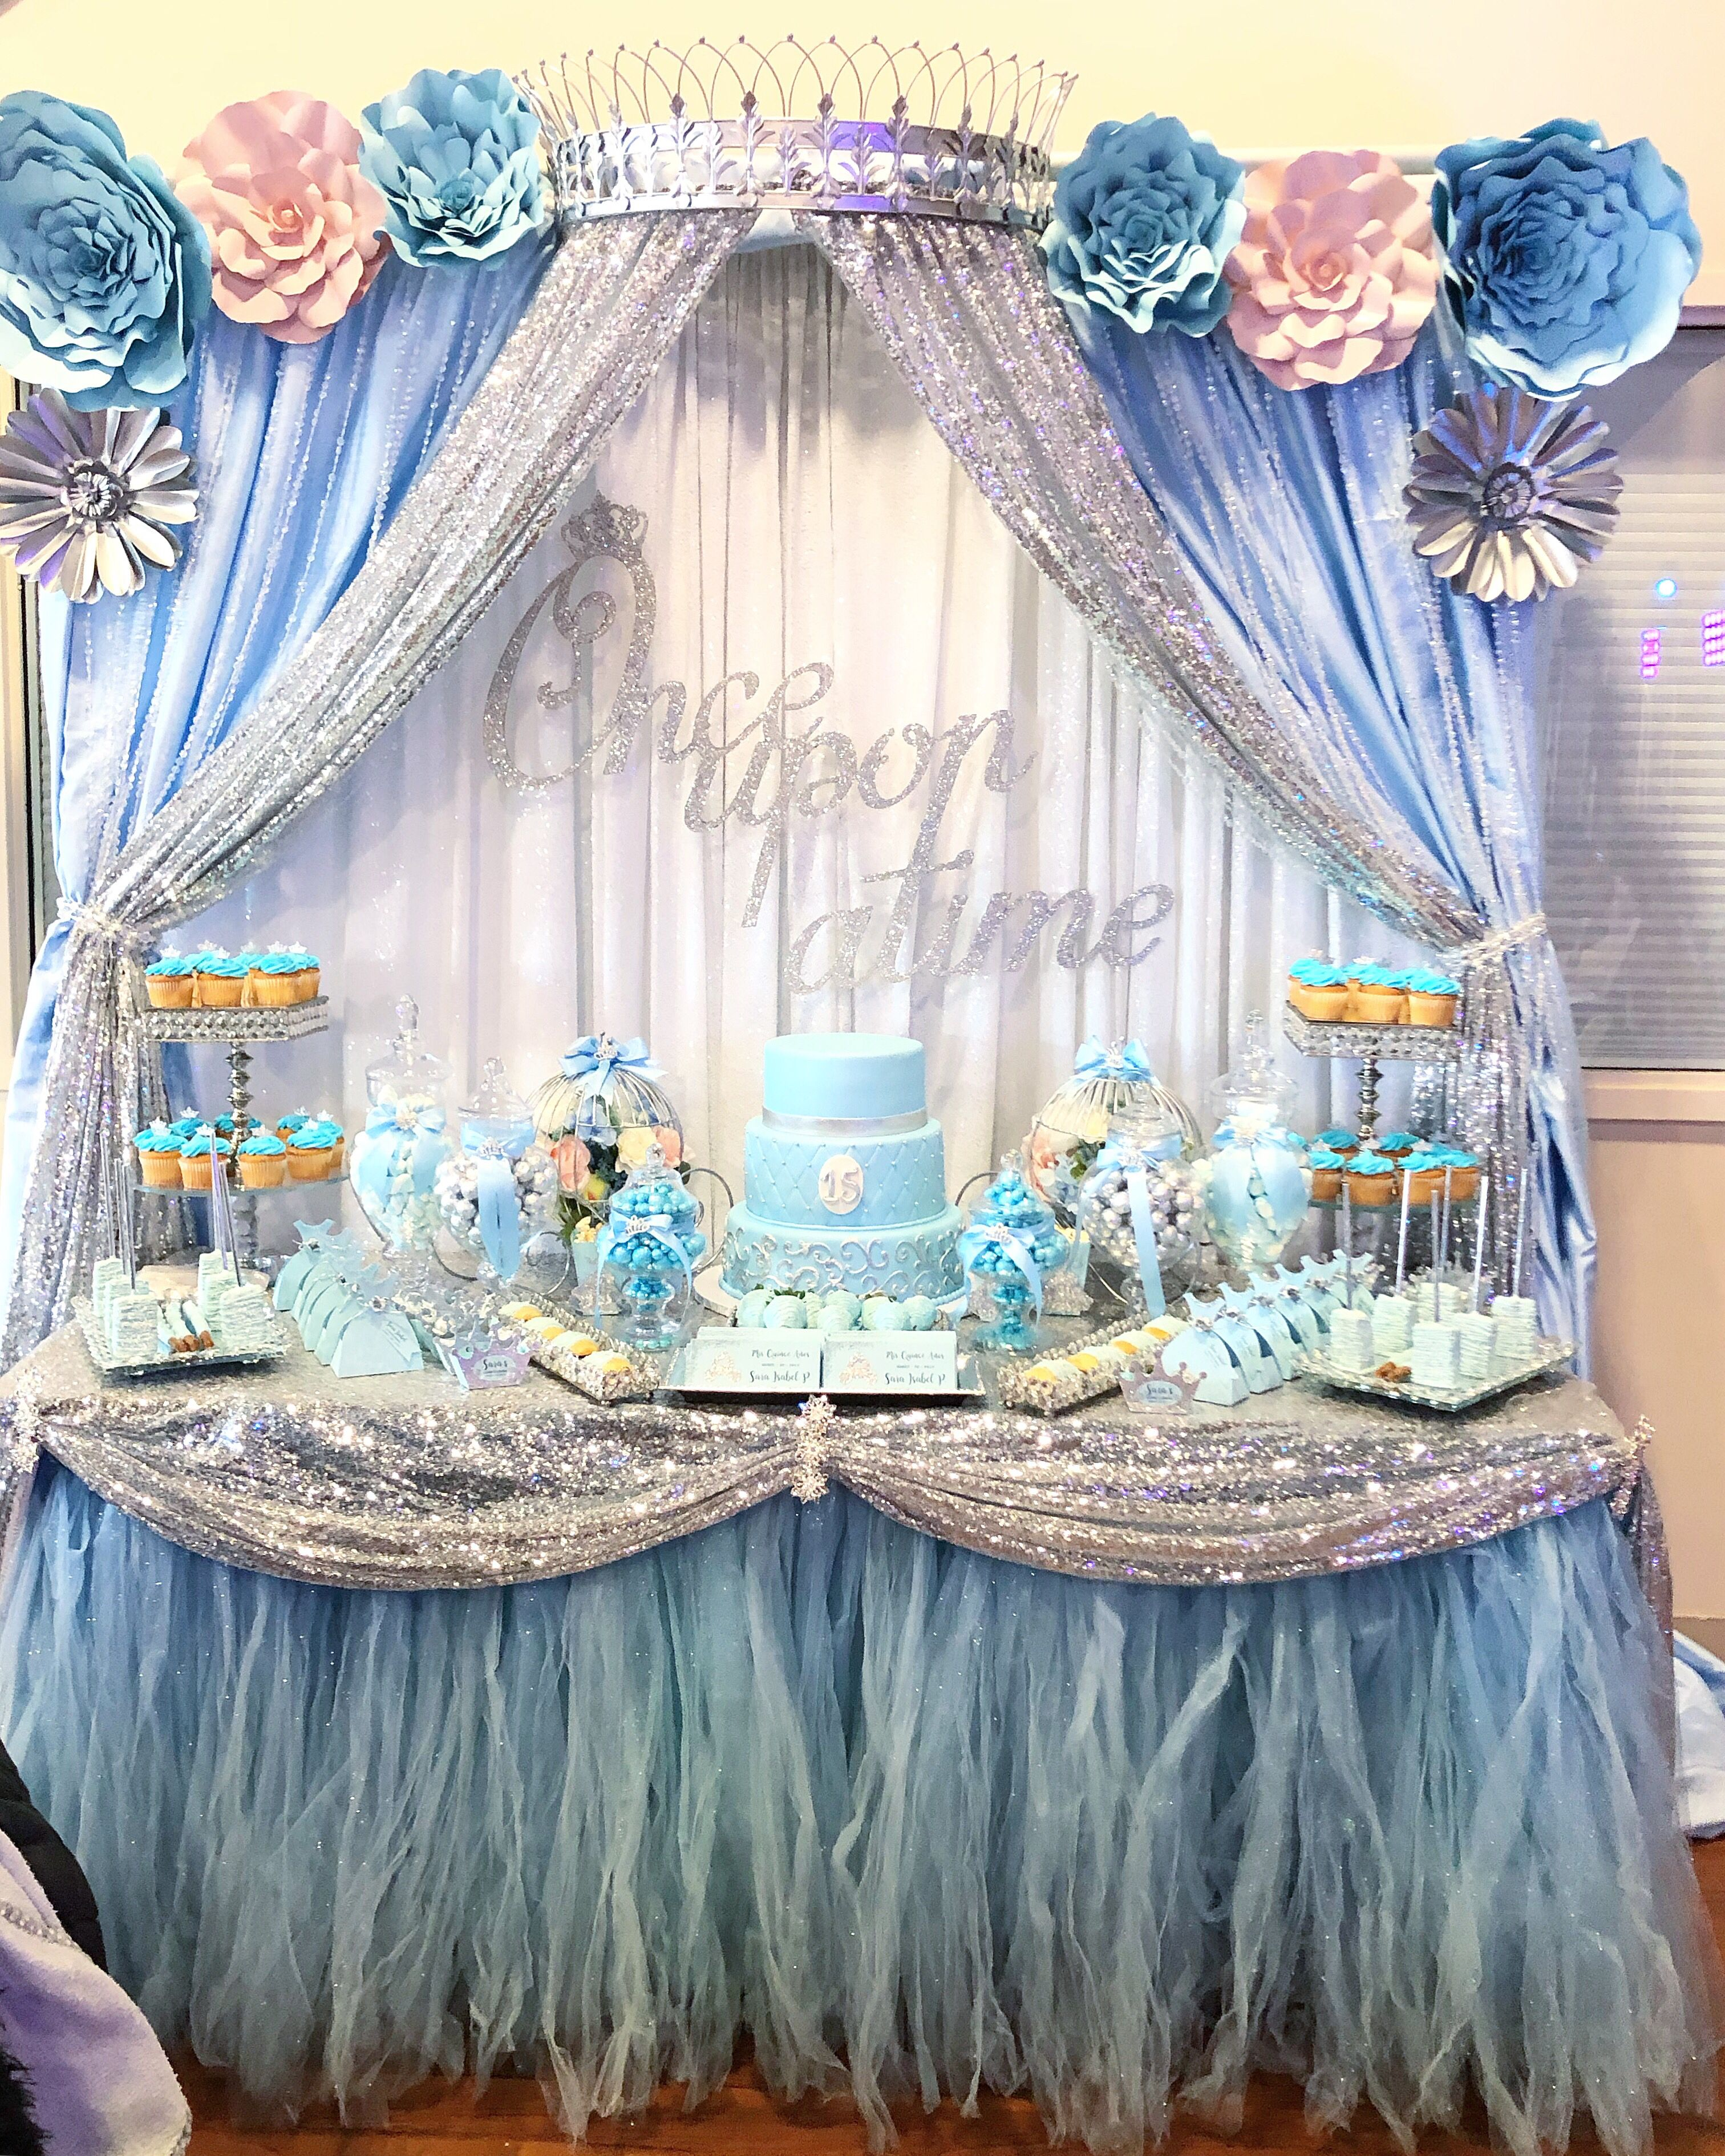 Pin By Creations By Martha On Quinceanera Party Ideas Cinderella Quinceanera Themes Cinderella Birthday Party Cinderella Birthday Party Centerpieces